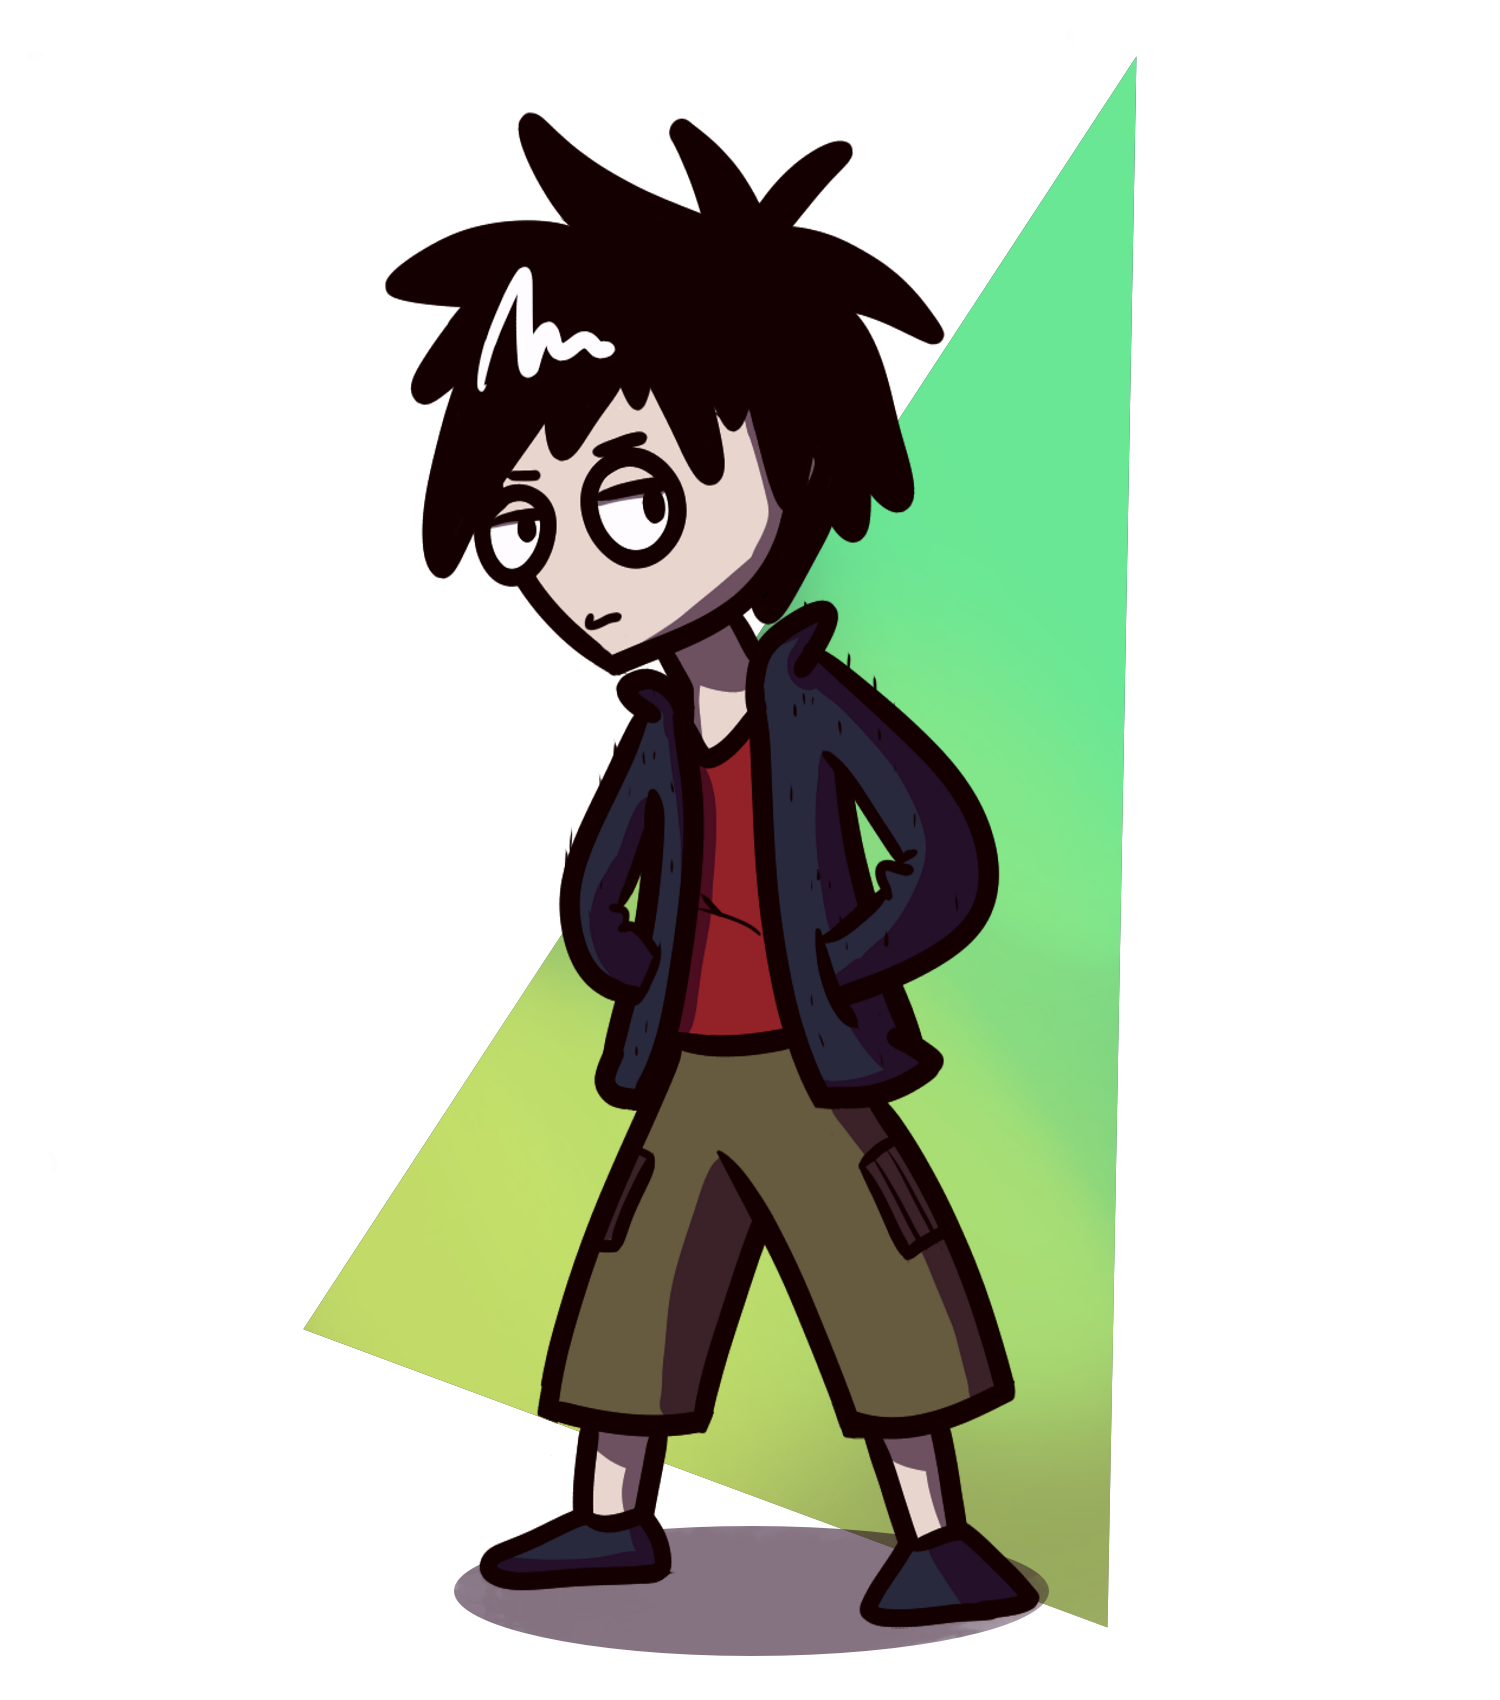 Hiro (Request from joebev910)